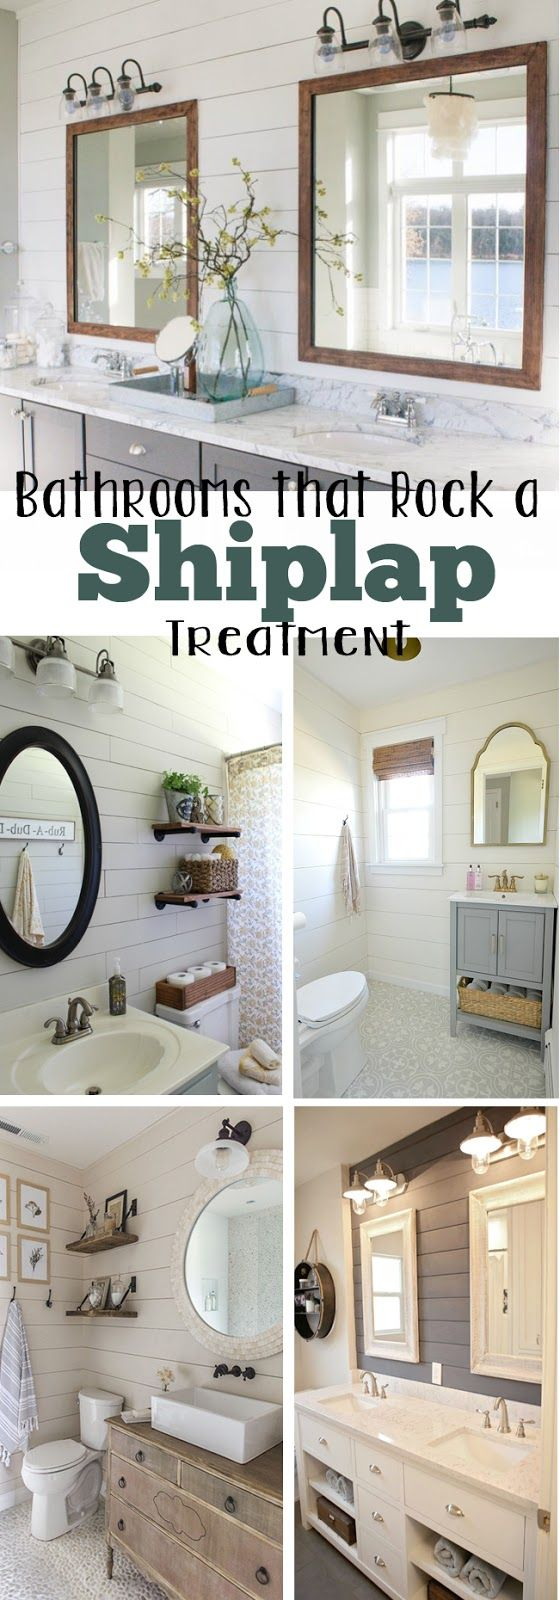 10 bathrooms that rock a shiplap treatment - Bathroom Ideas Country Style